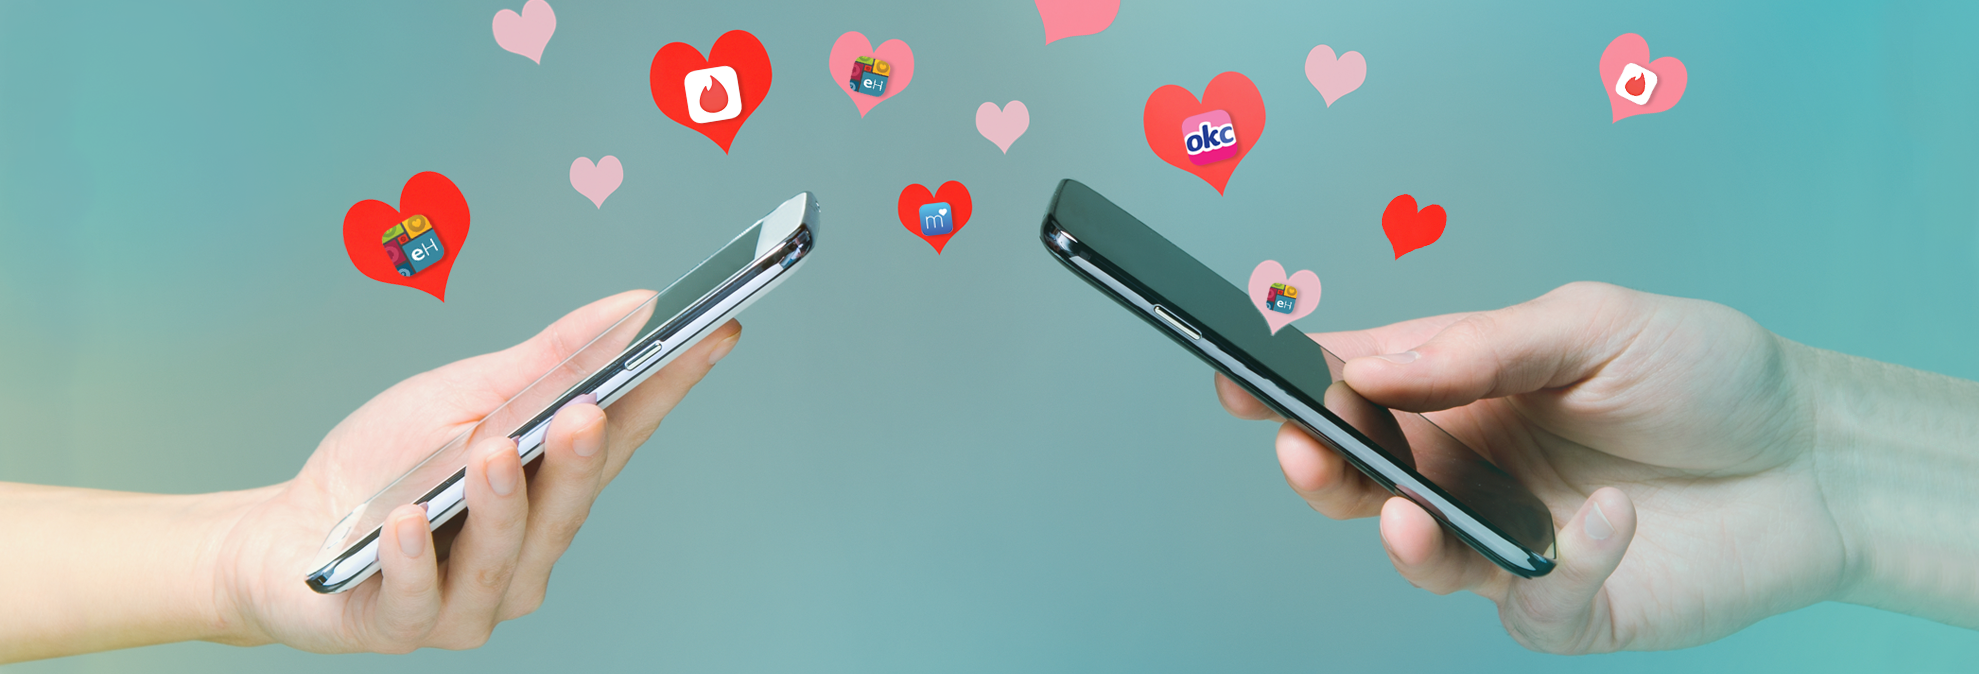 Pros and cons of online dating websites